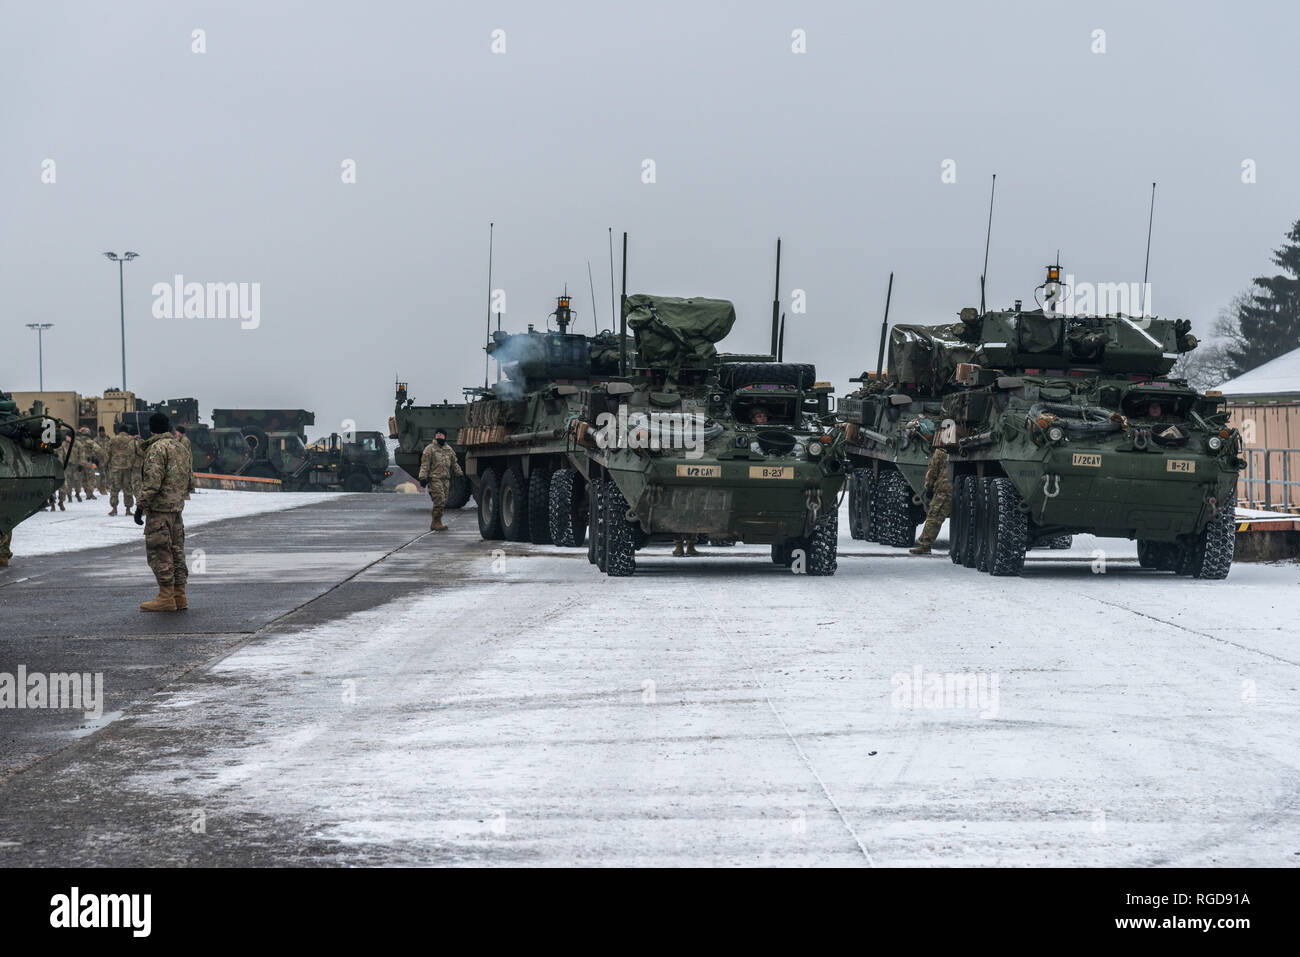 Soldiers Assigned To First Squadron Second Cavalry Regiment From Vilseck Germany Are Maintaining Their Vehicles At The Baumholder Military Training Area Motor Pool Camp Aulenbach Baumholder Germany Onjanuary 25 2019 On